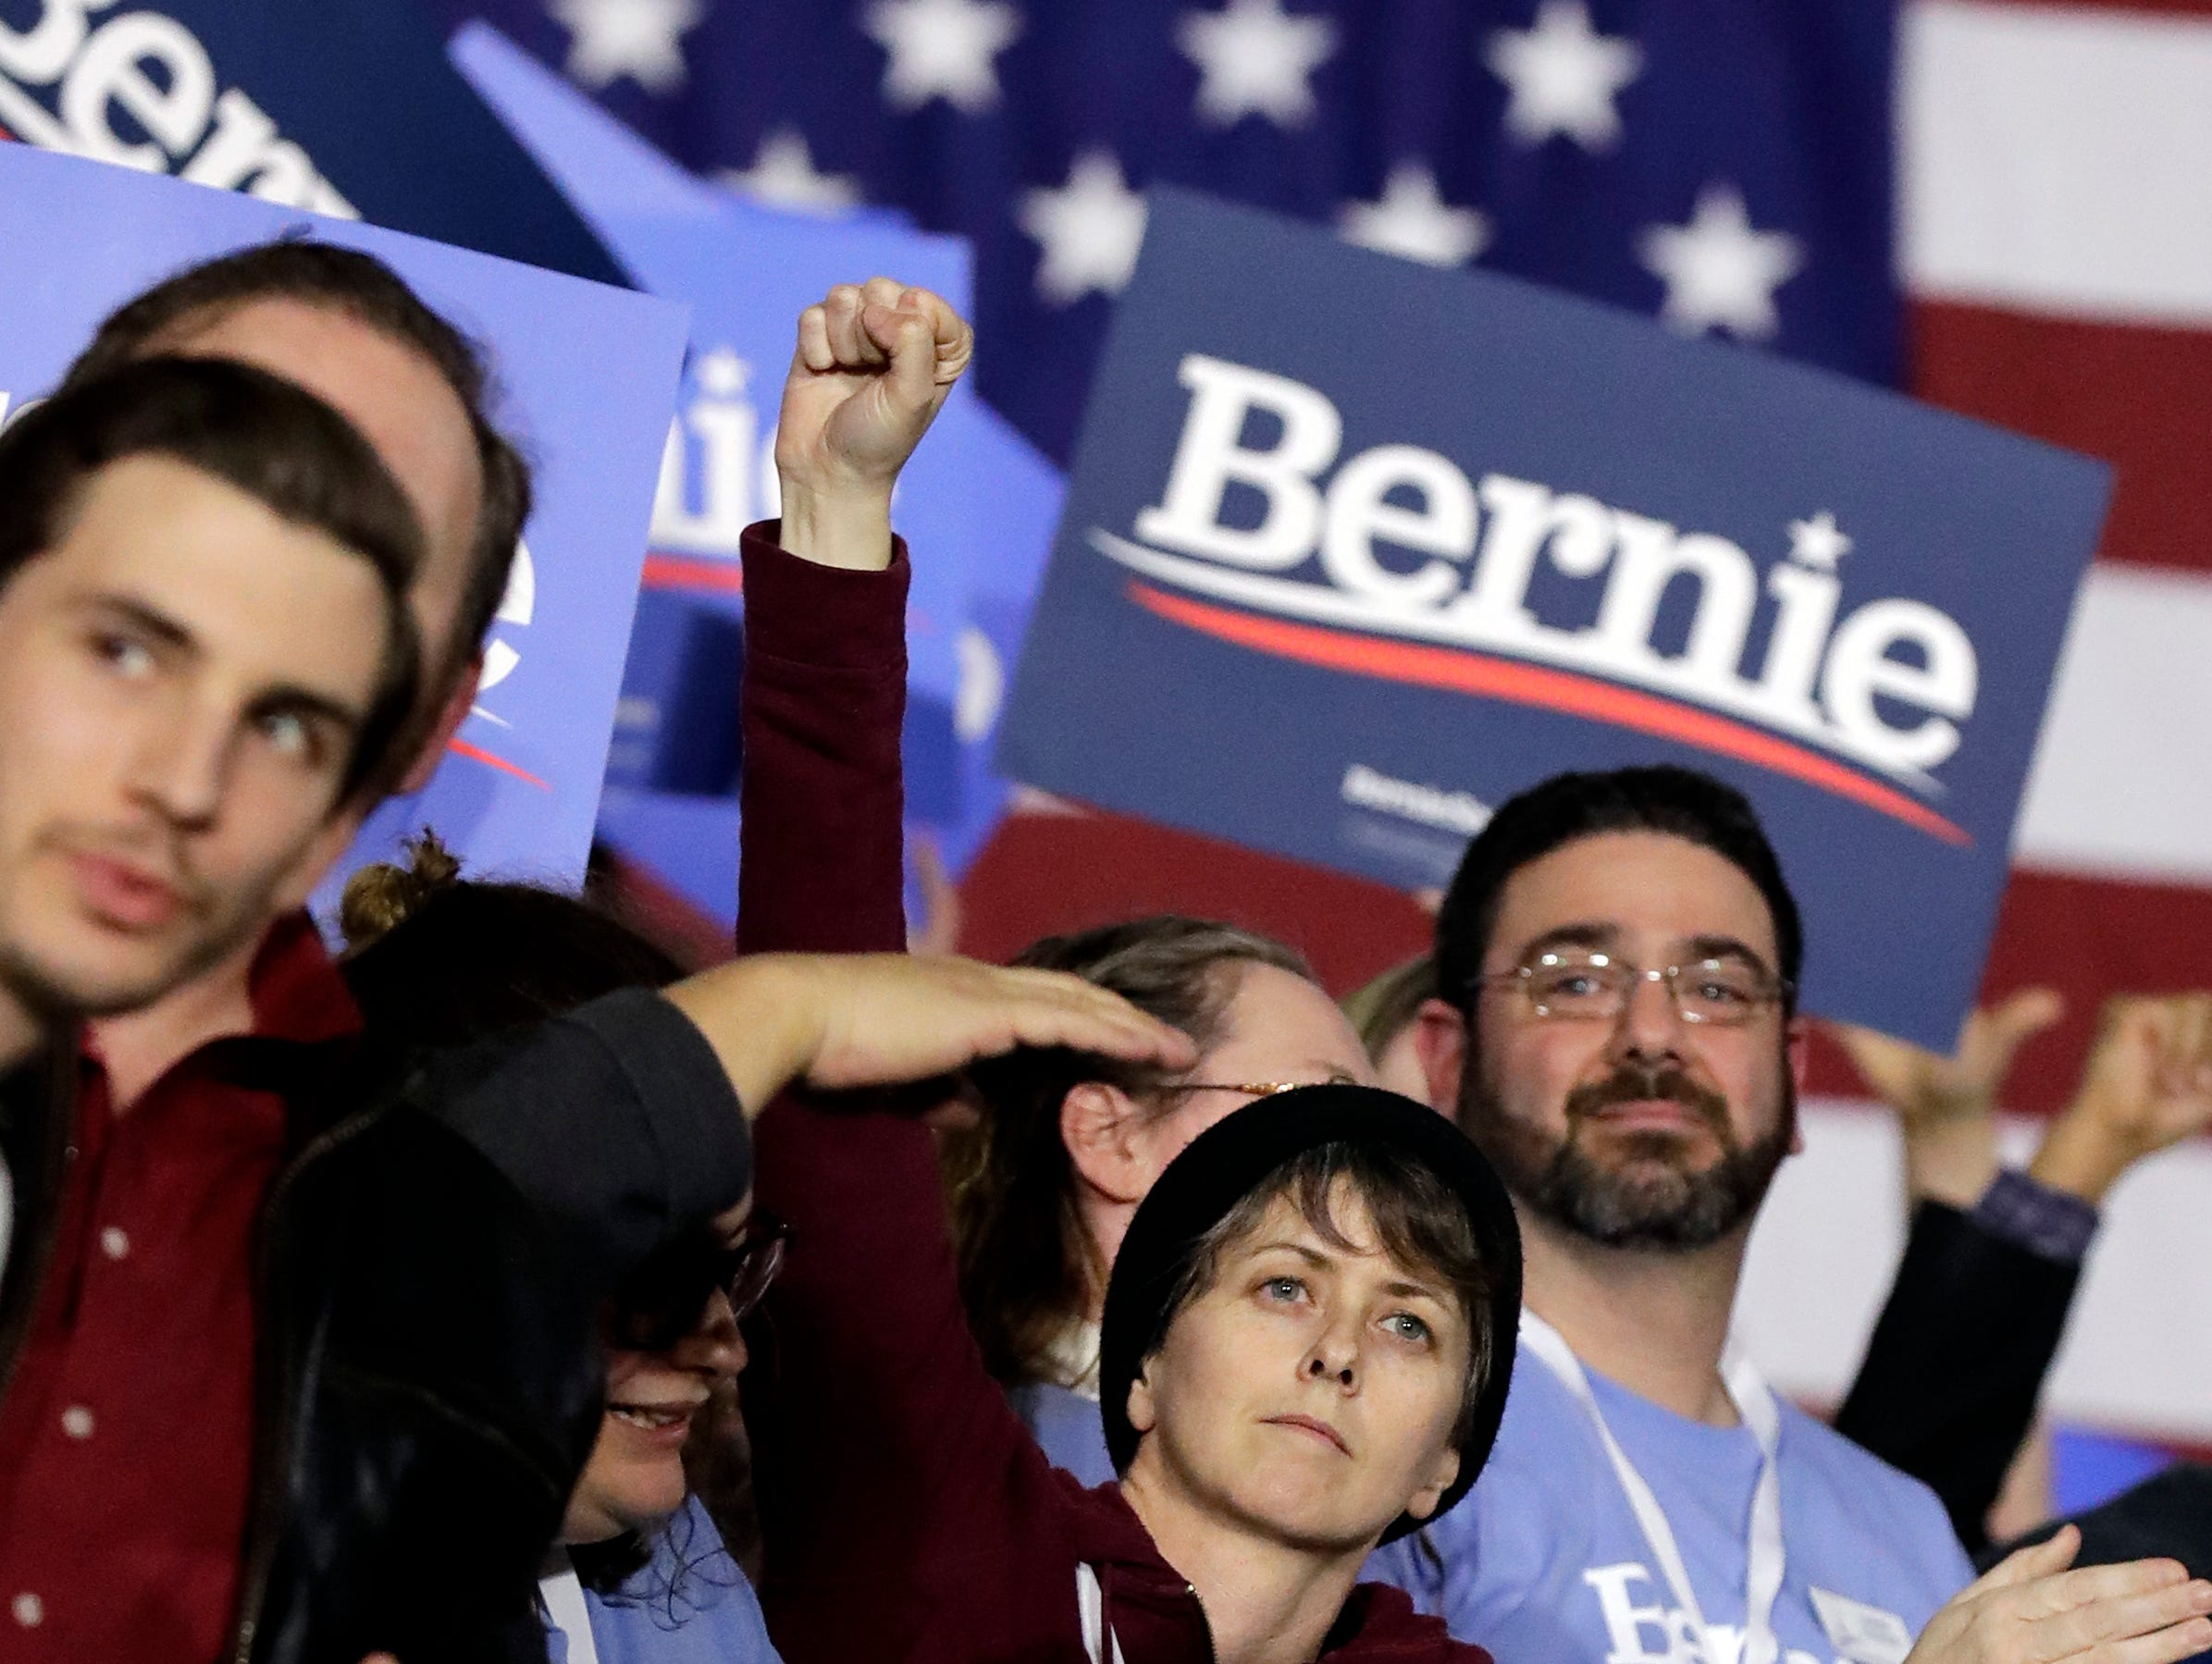 Supporters wait for Sen. Bernie Sanders at 2020 presidential campaign event in Chicago, Sunday, March 3, 2019. Over the next several weeks, Sanders will travel to Iowa, New Hampshire, South Carolina, Nevada, and California. He will then return to Burlington, Vt., for the official launch of his campaign.